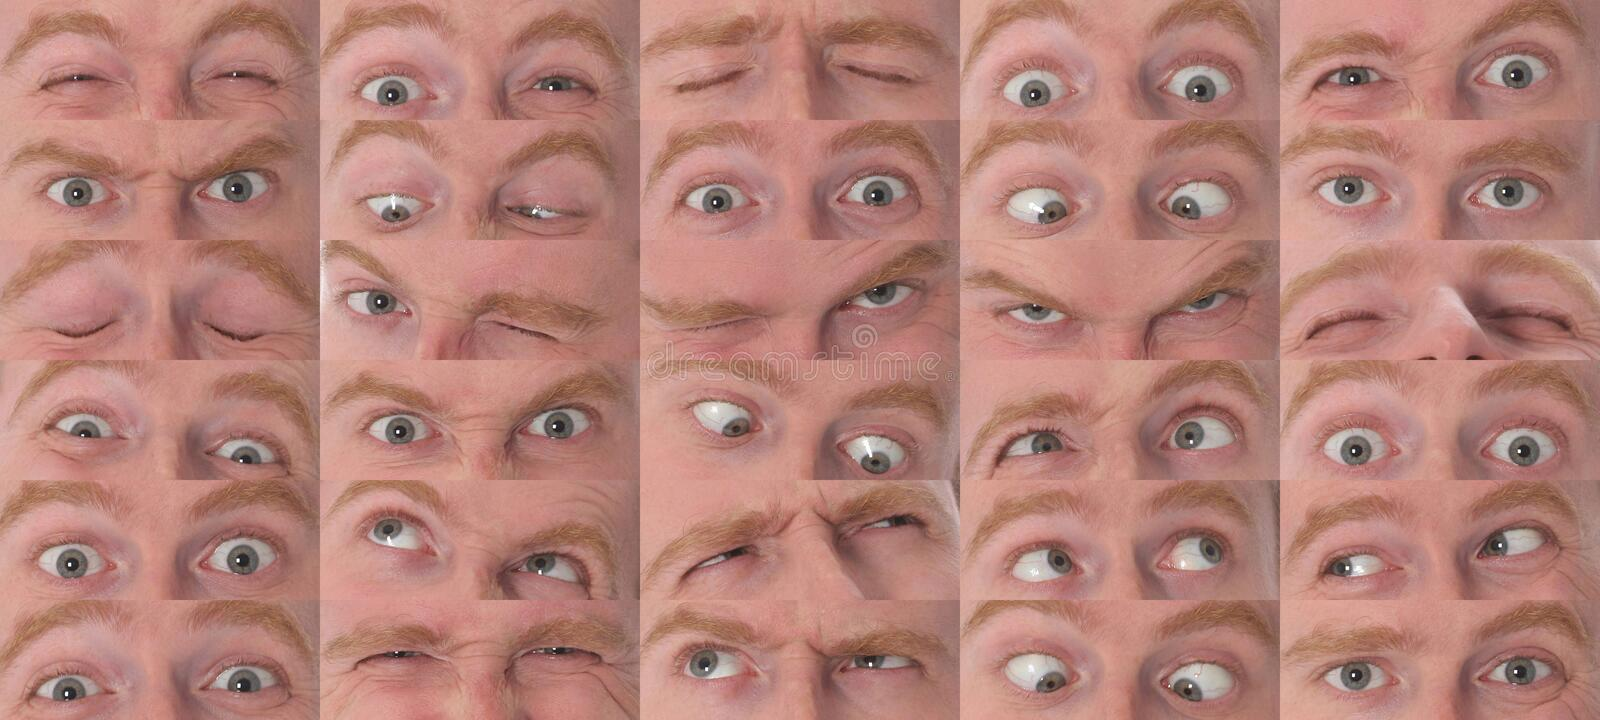 Eyes expressions in closeup royalty free stock image